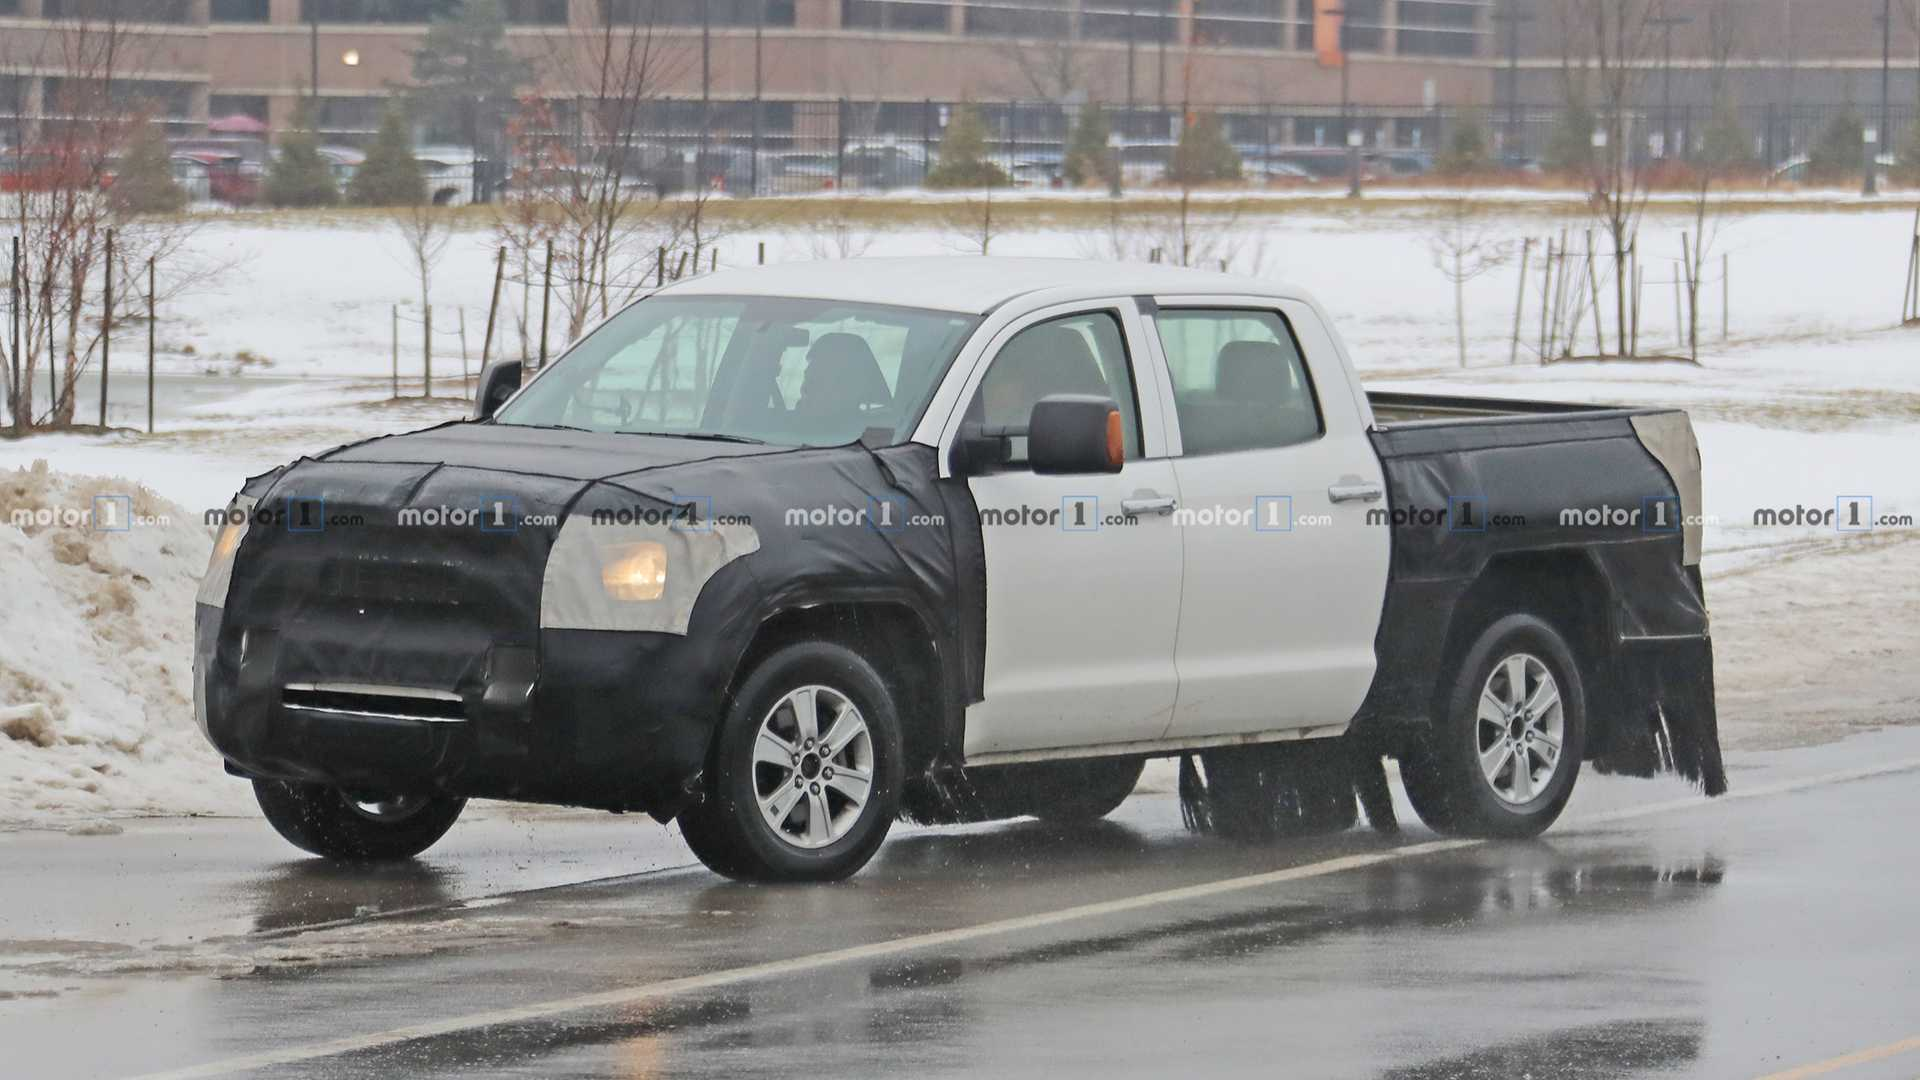 65 Gallery of 2020 Toyota Tundra Concept Release Date with 2020 Toyota Tundra Concept